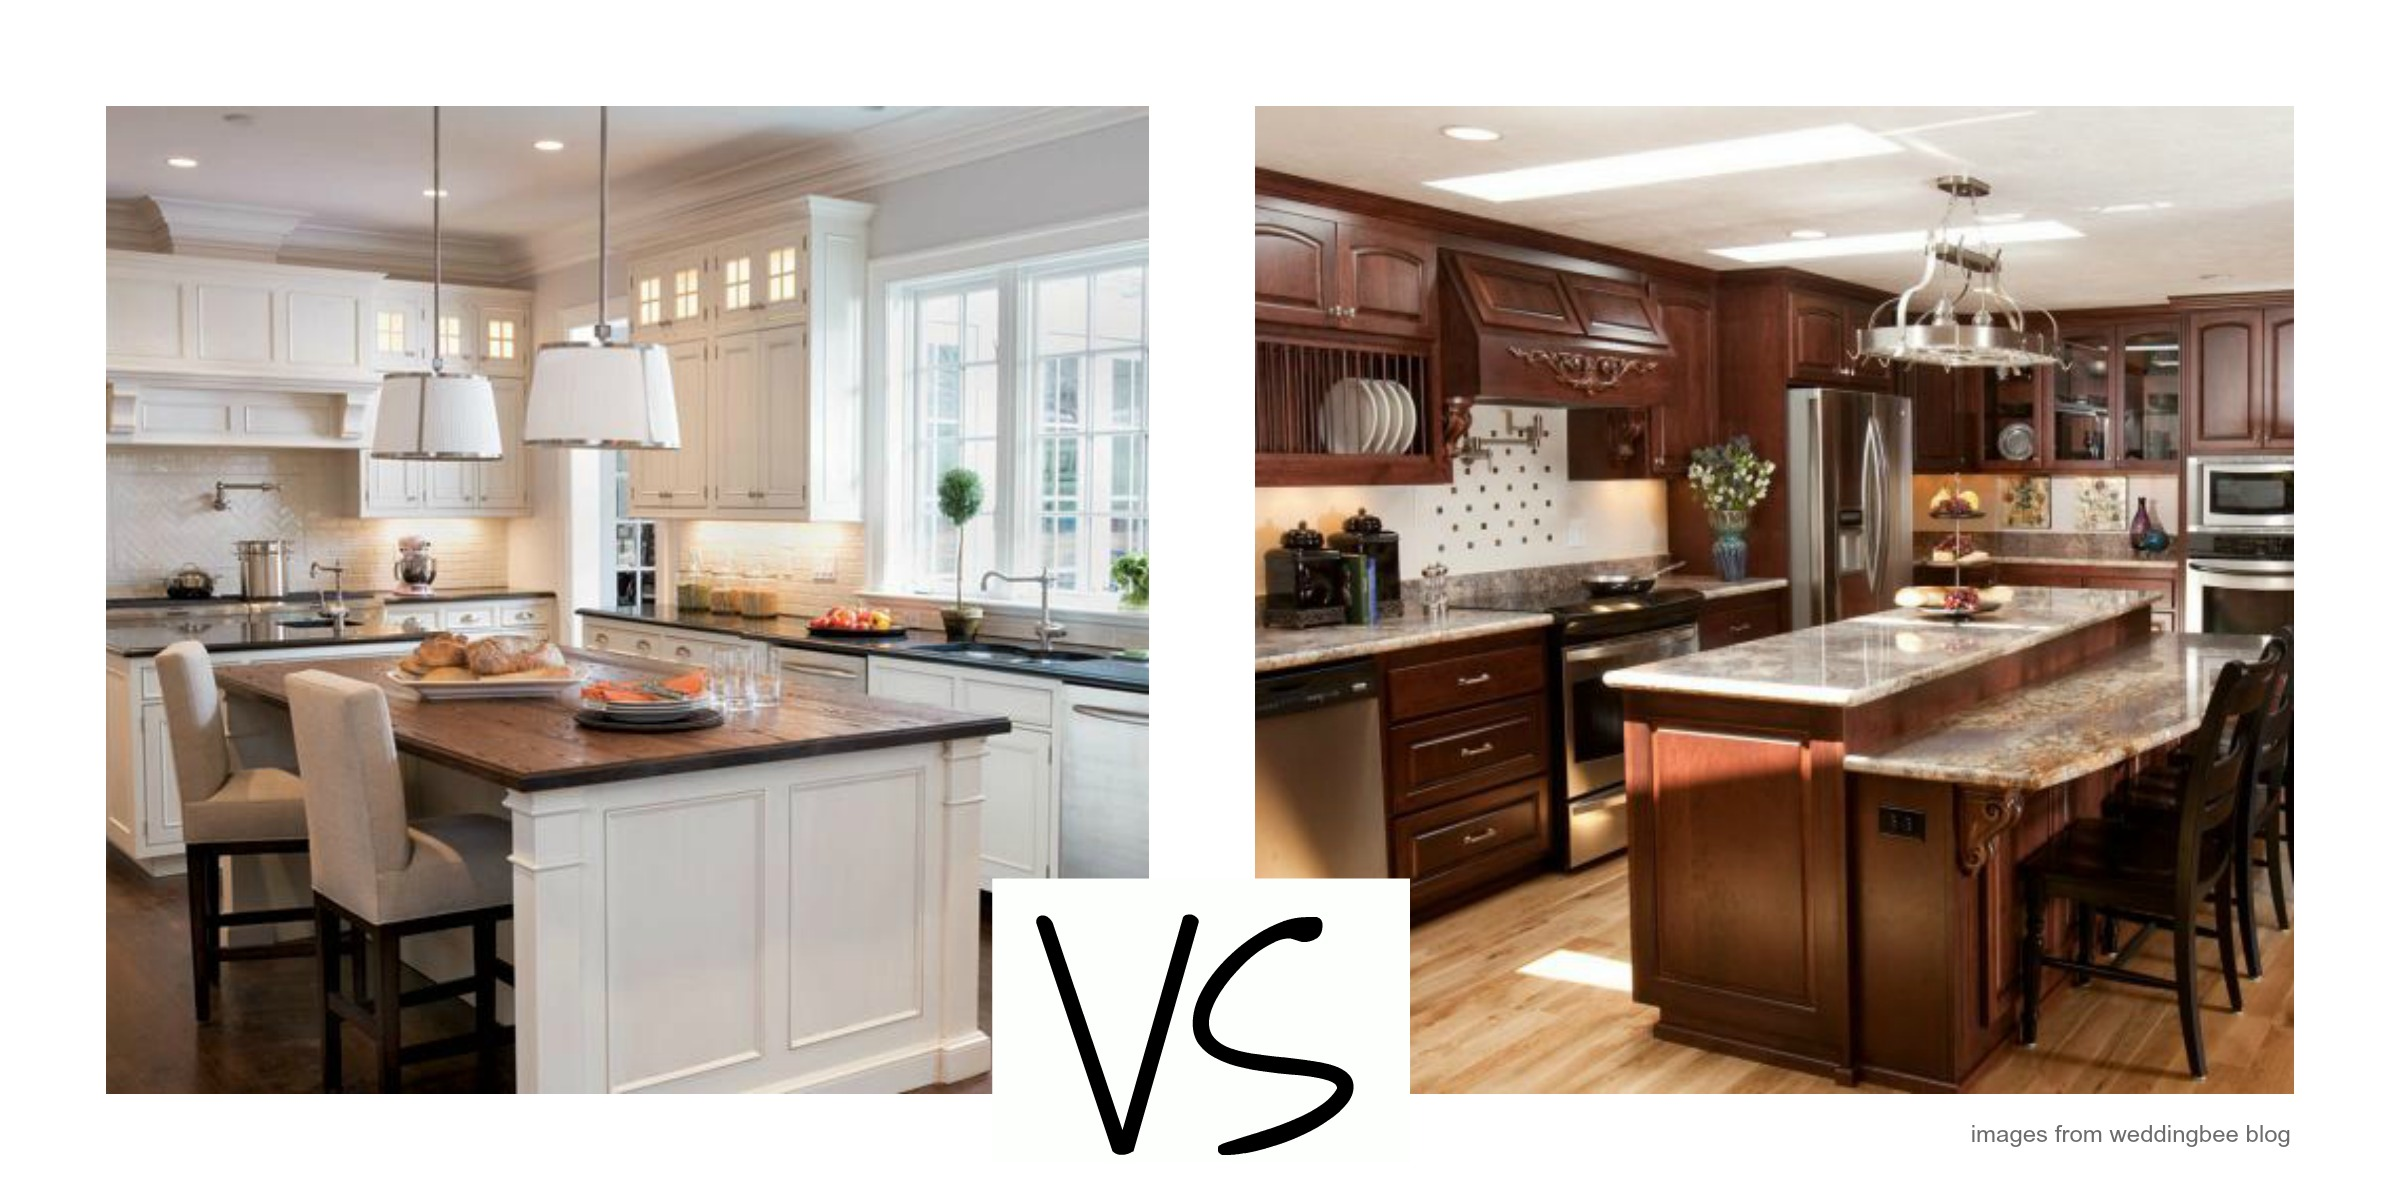 White Vs Wood Kitchen Cabinets: By Pamela Sandall, Pamela Sandall Design